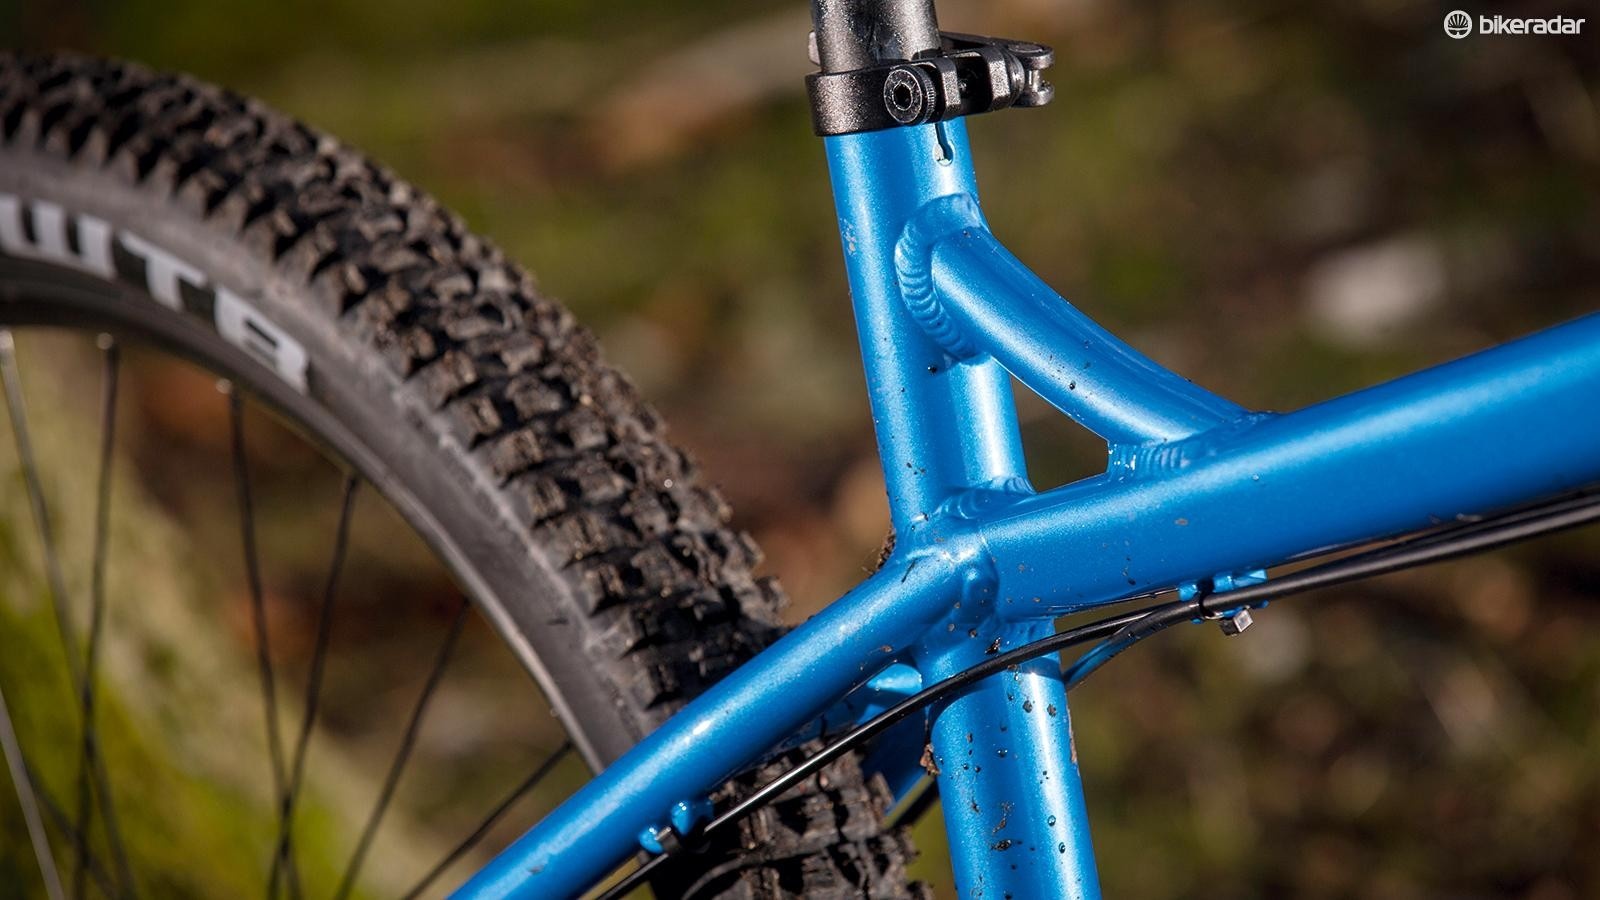 The burly alloy frame is stiff but not overly harsh